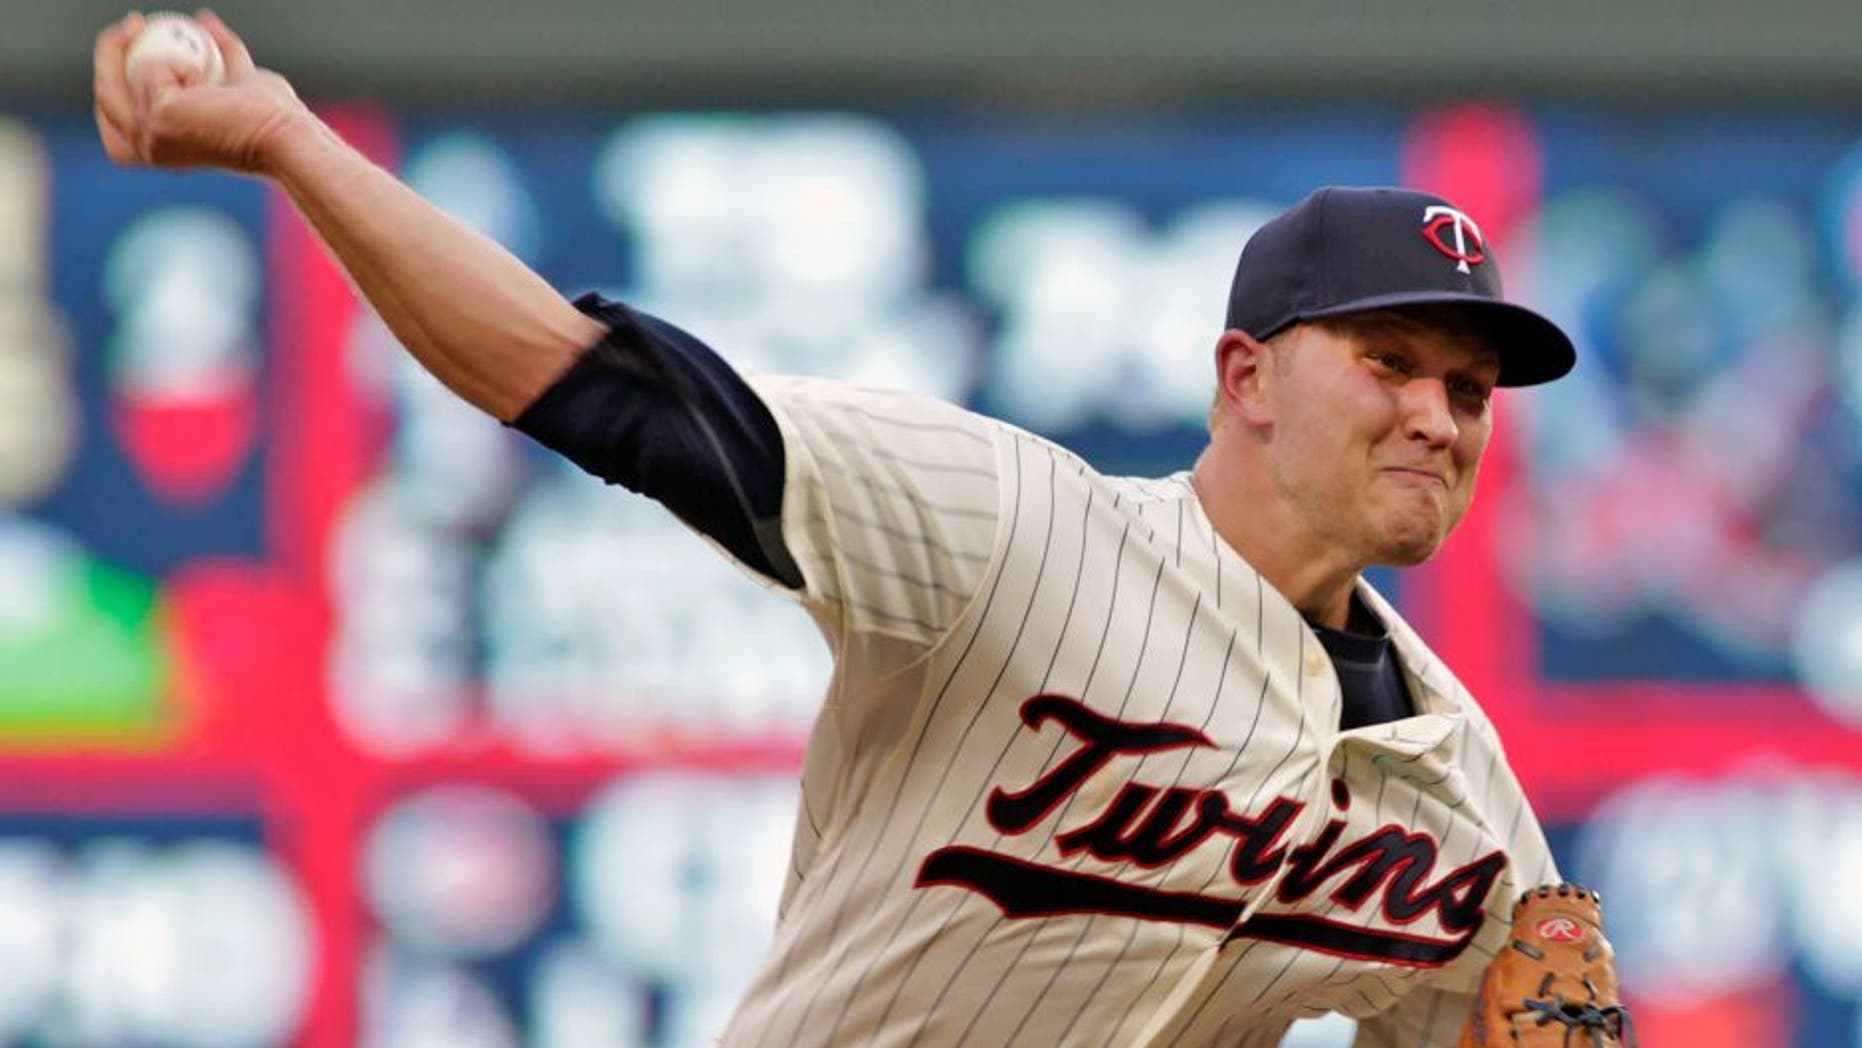 Minnesota Twins starting pitcher Tyler Duffey delivers during the sixth inning of a baseball game against the Cleveland Indians on Saturday, Aug. 15, 2015, in Minneapolis. Duffey picked up his first major league win, giving up one hit in six innings, as Minnesota won 4-1. AP Photo/Paul Battaglia)